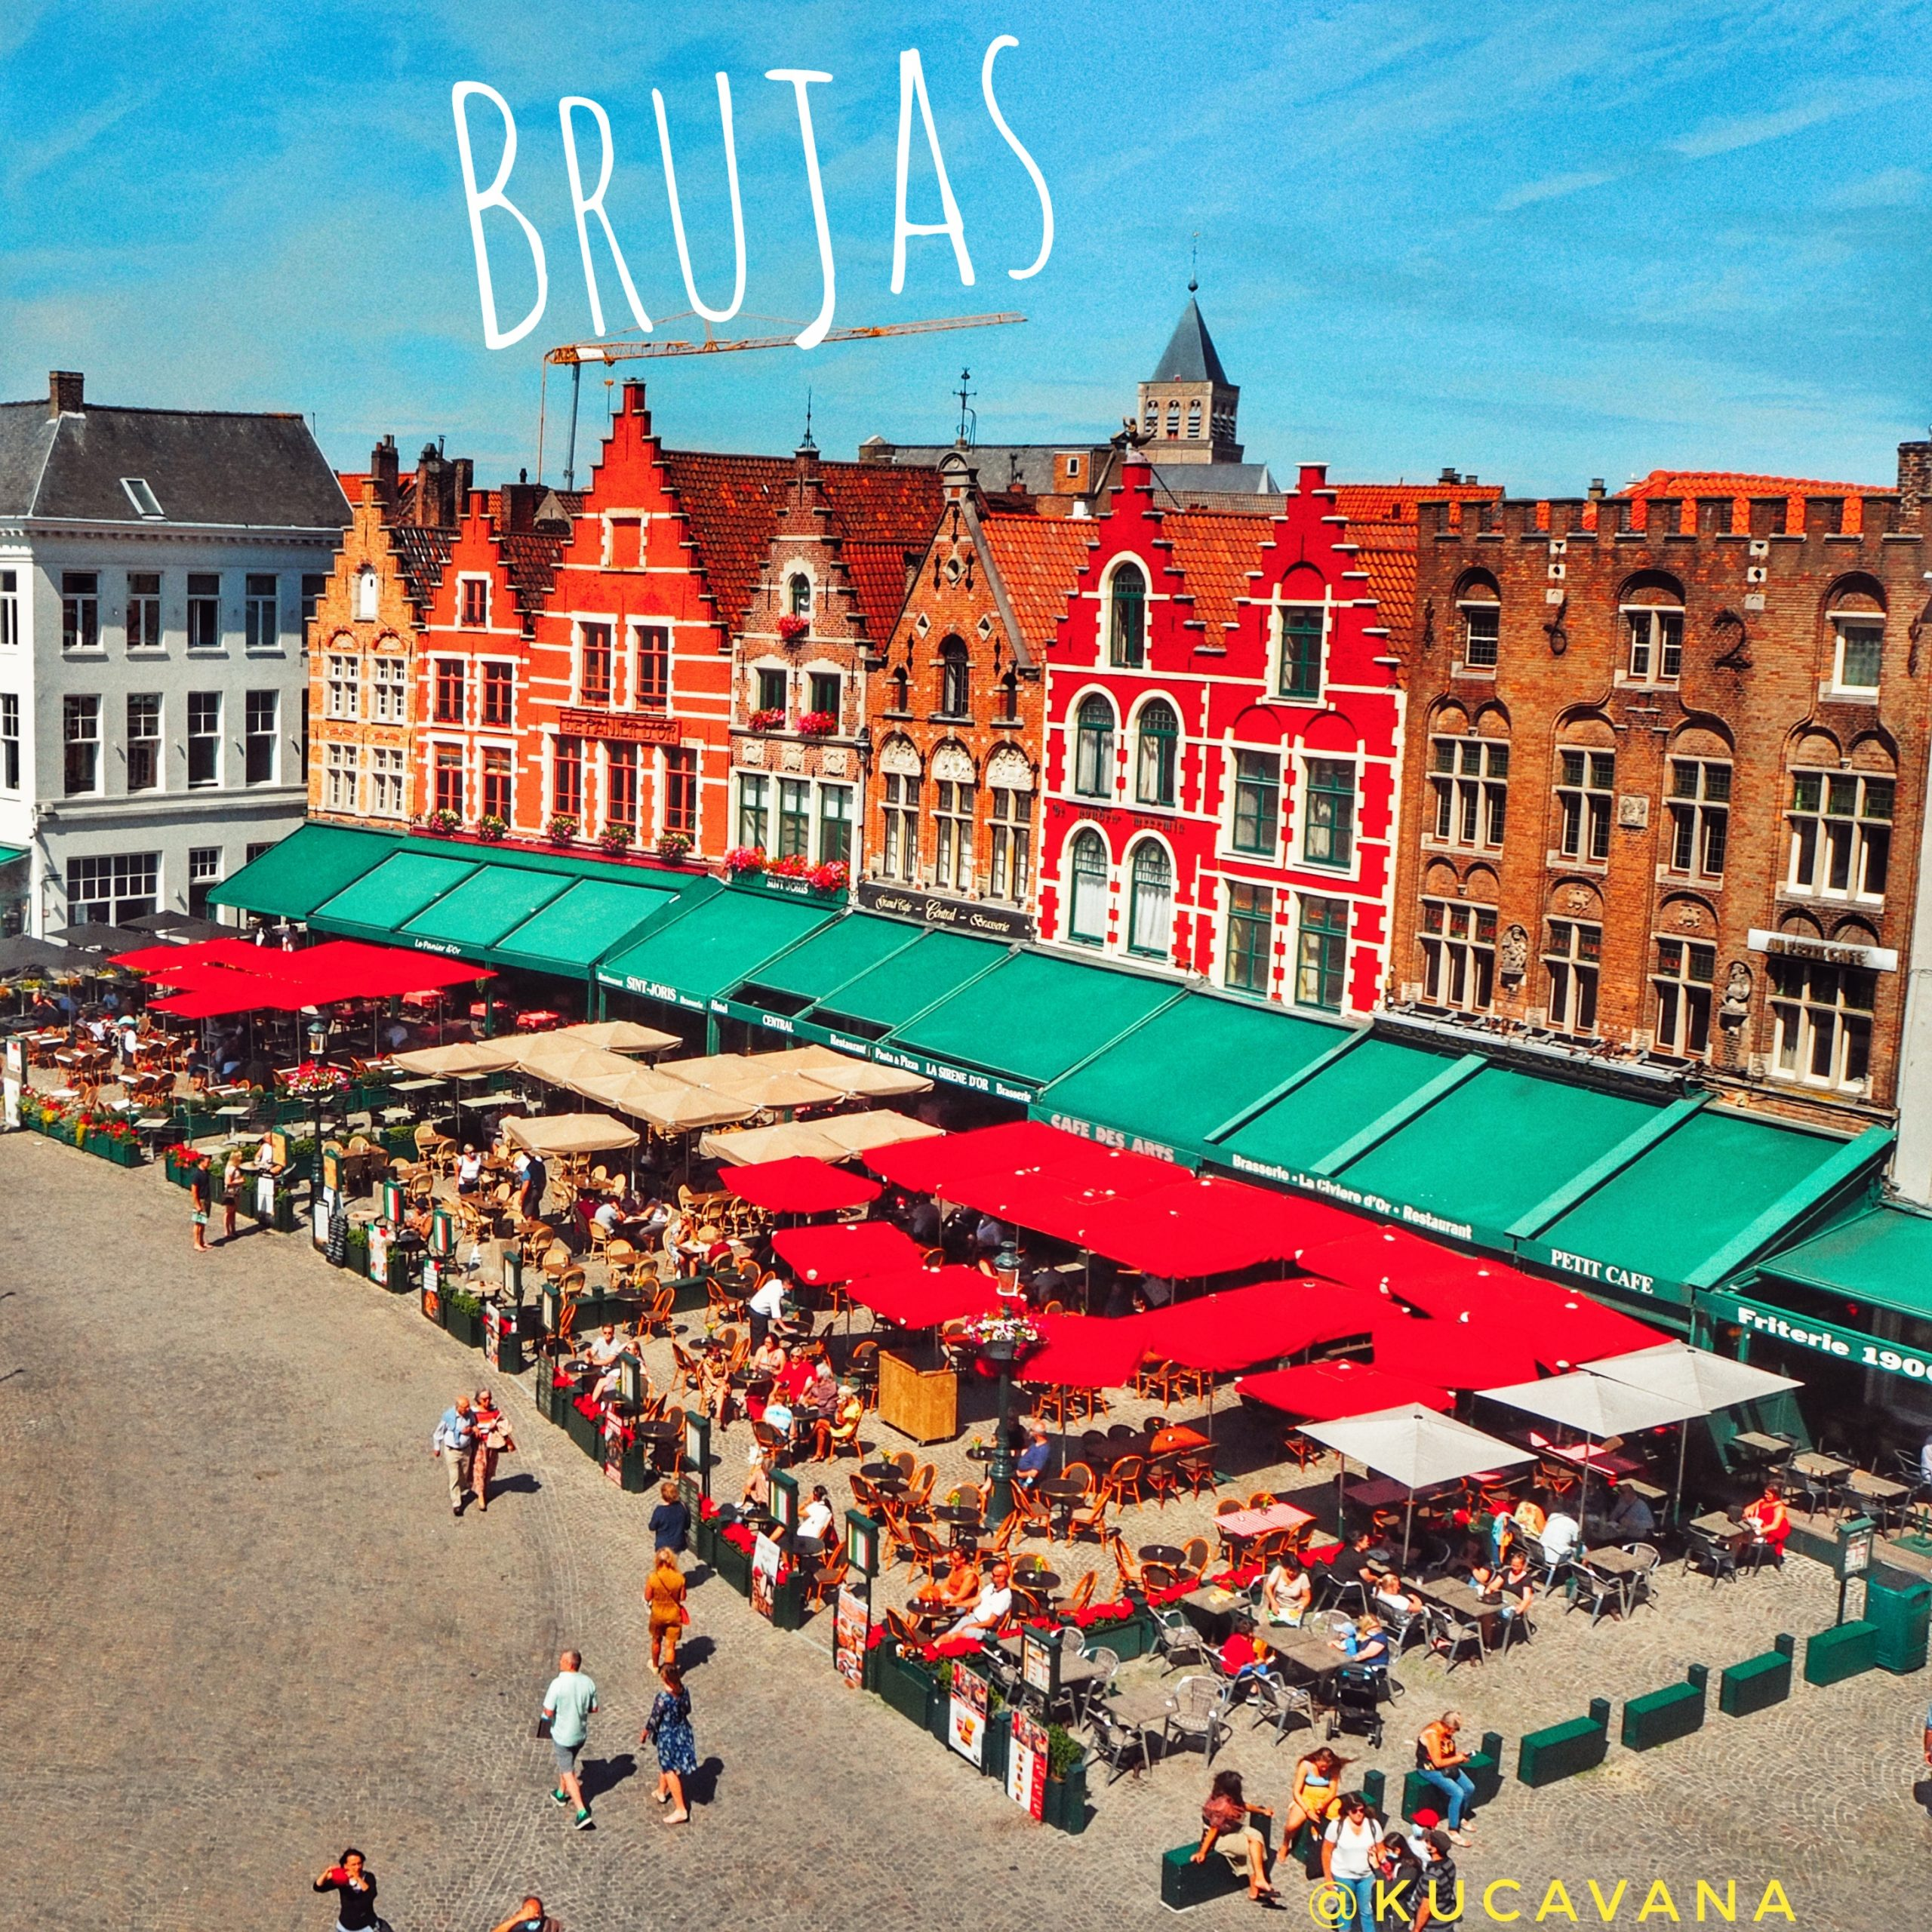 belgica brujas plaza mark